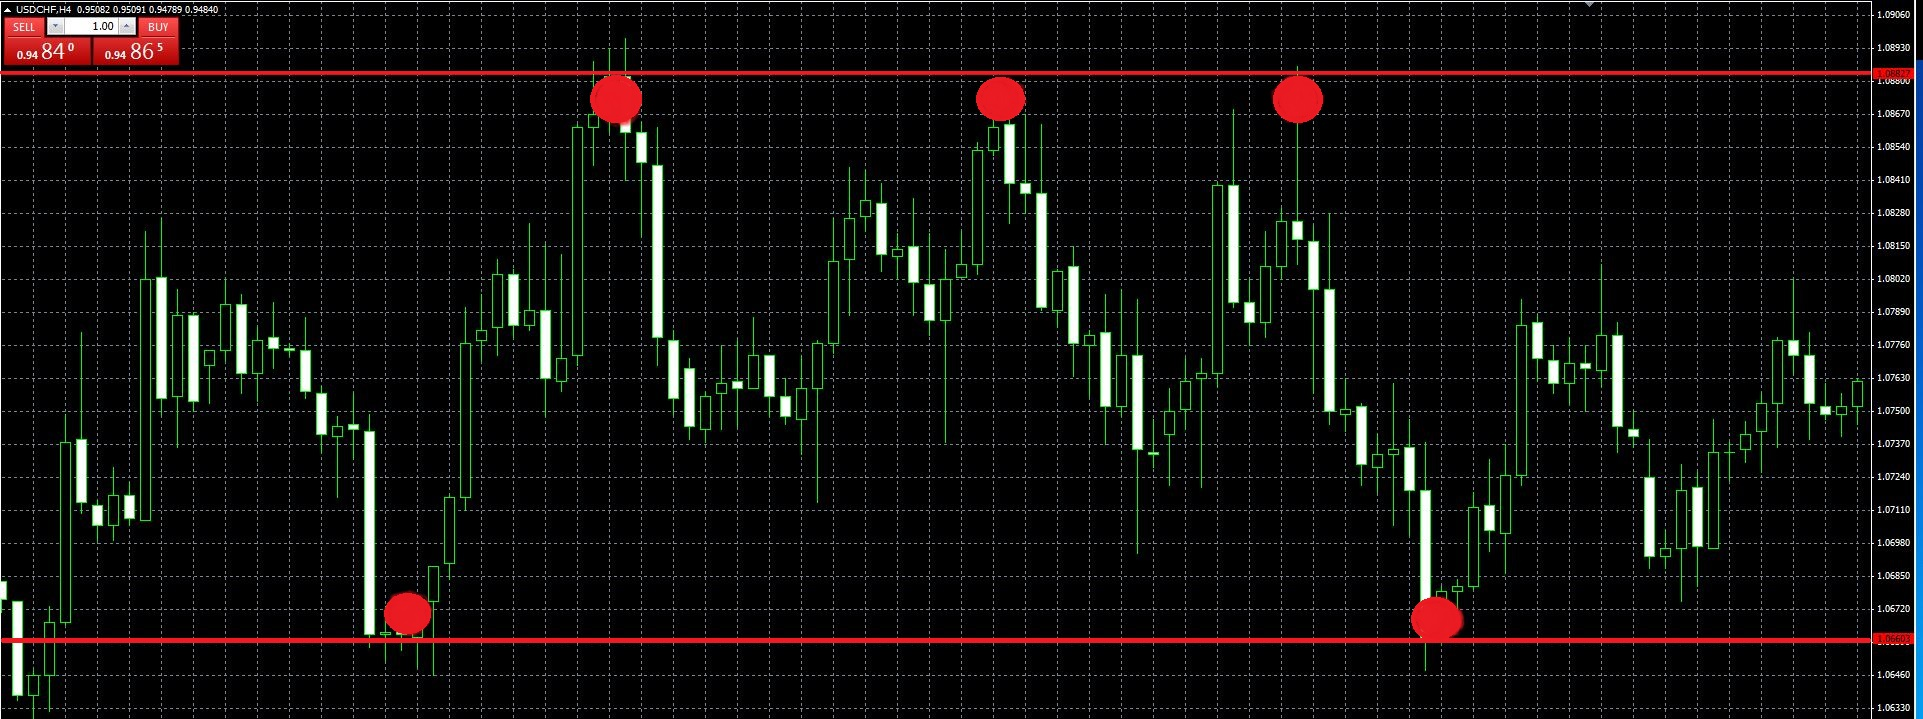 5 min binary options trading strategy